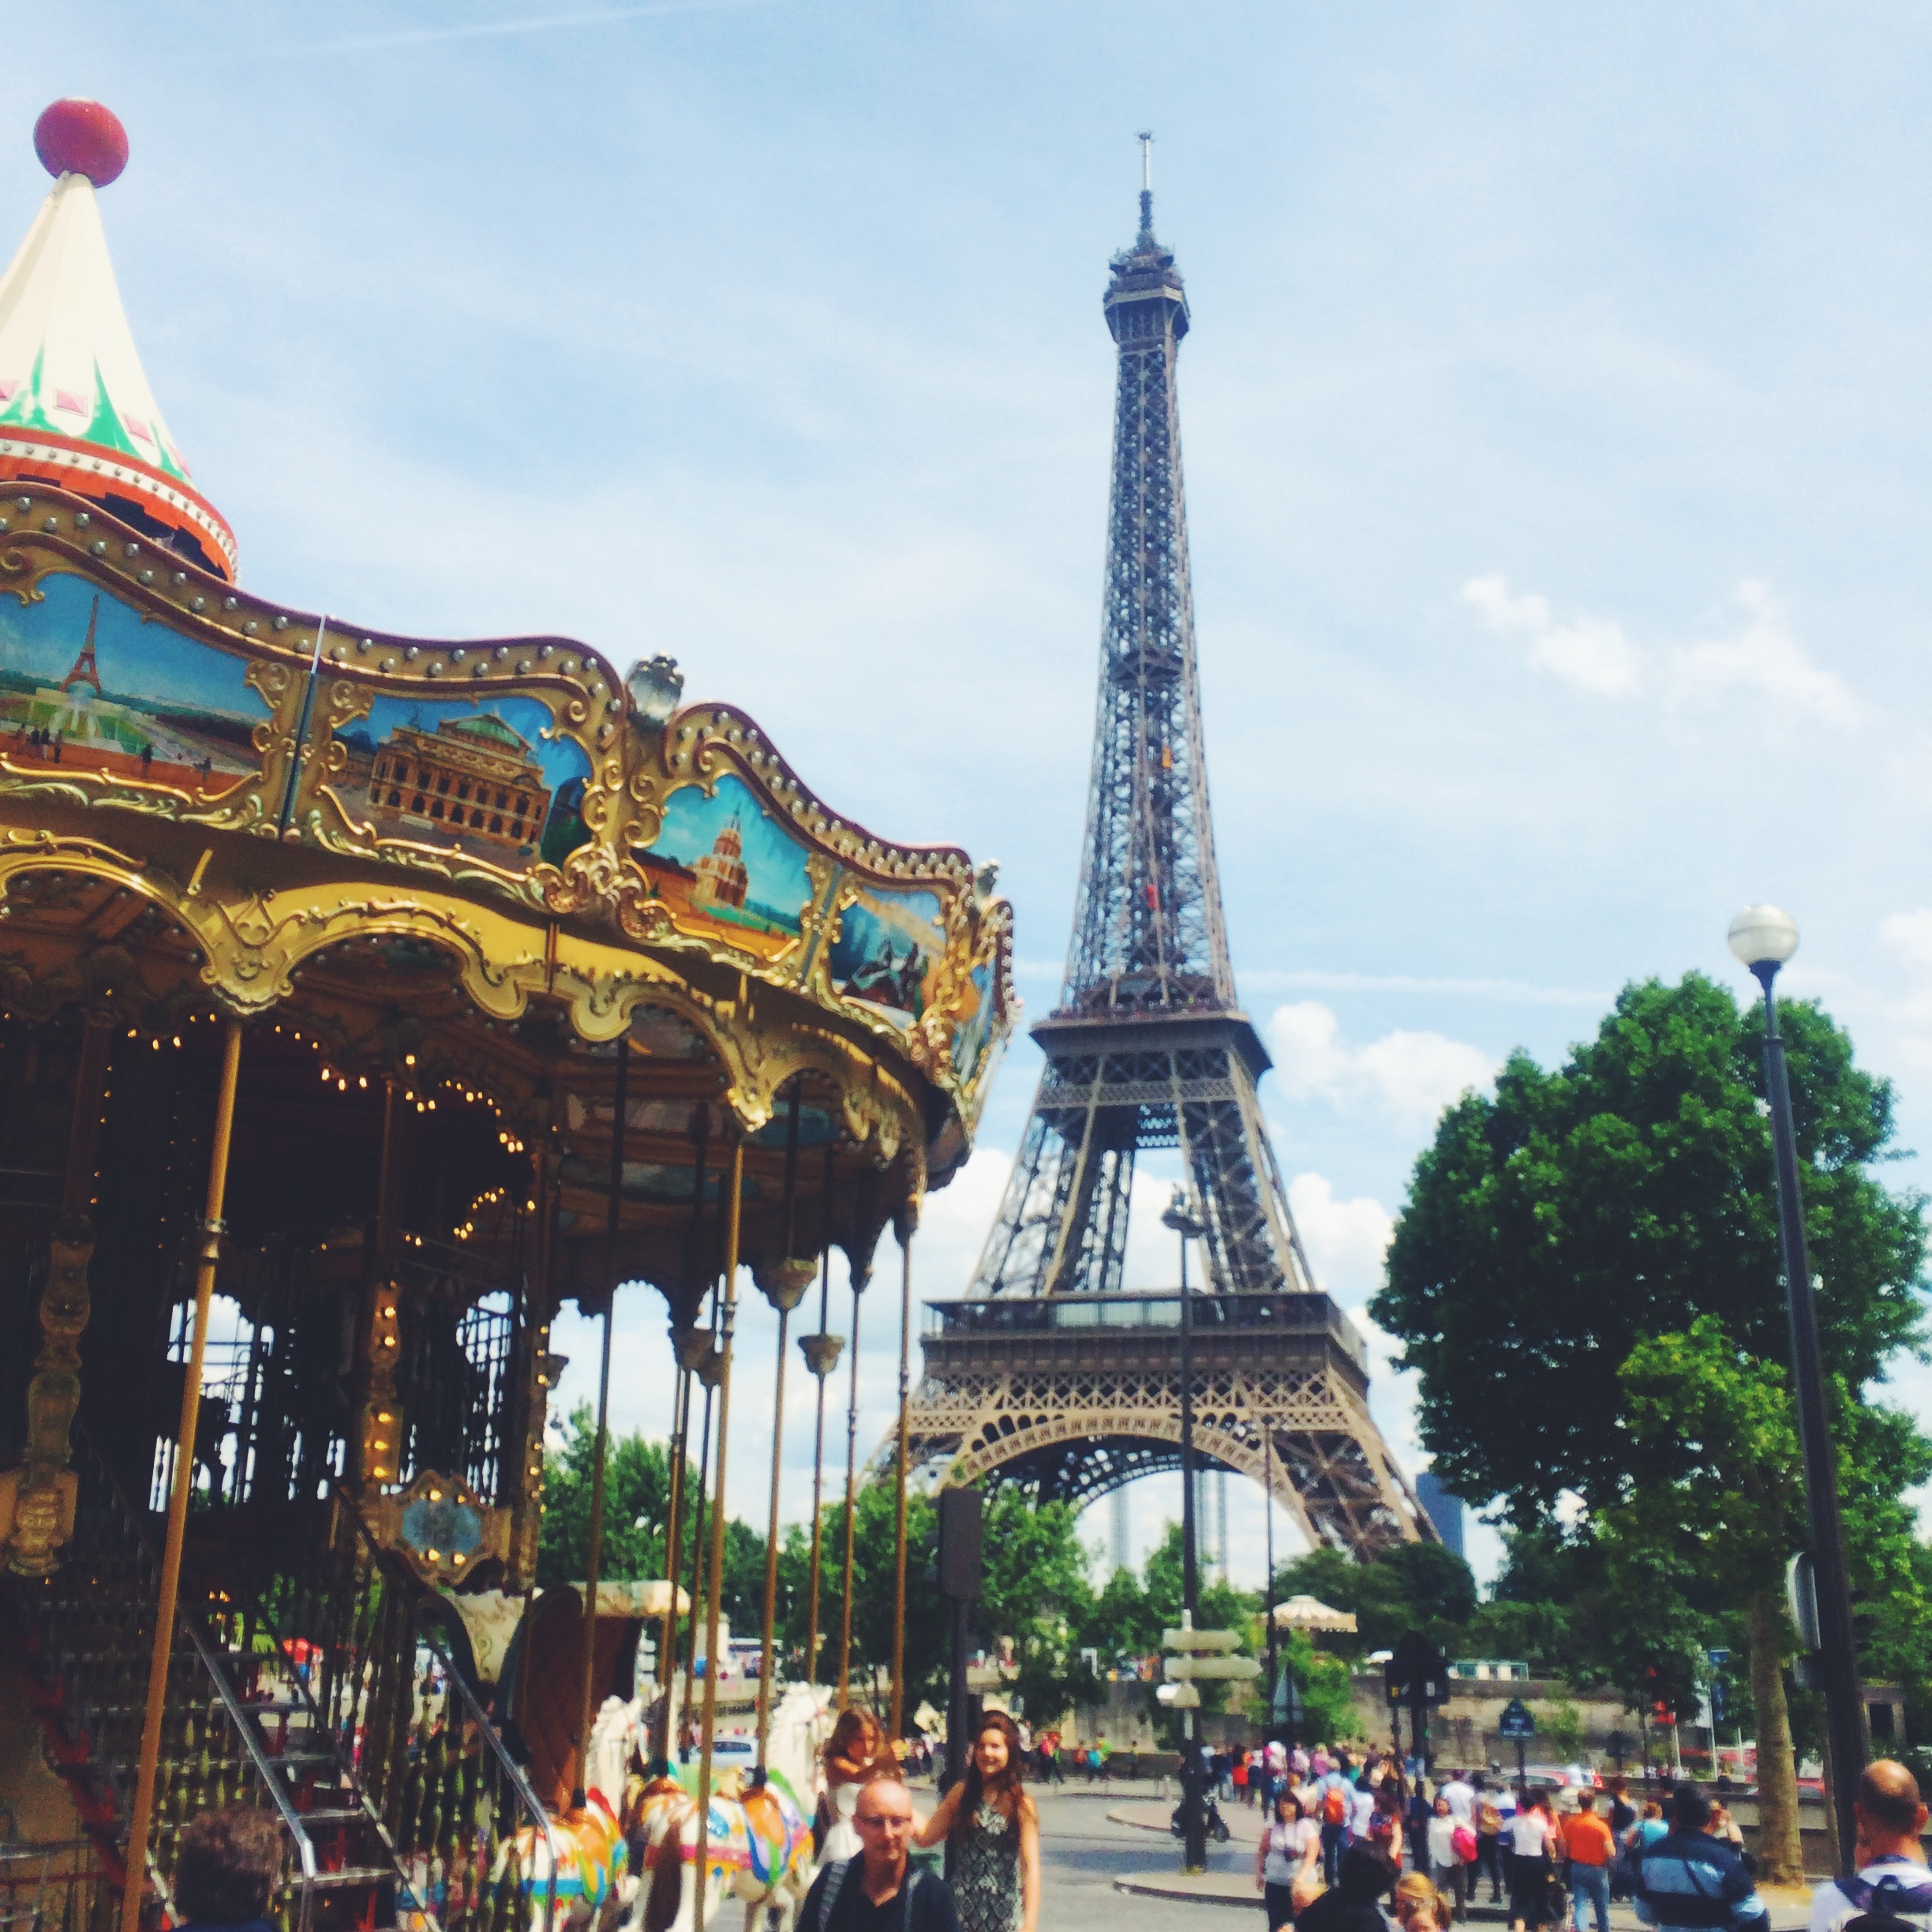 Carousel + Eiffel Tower